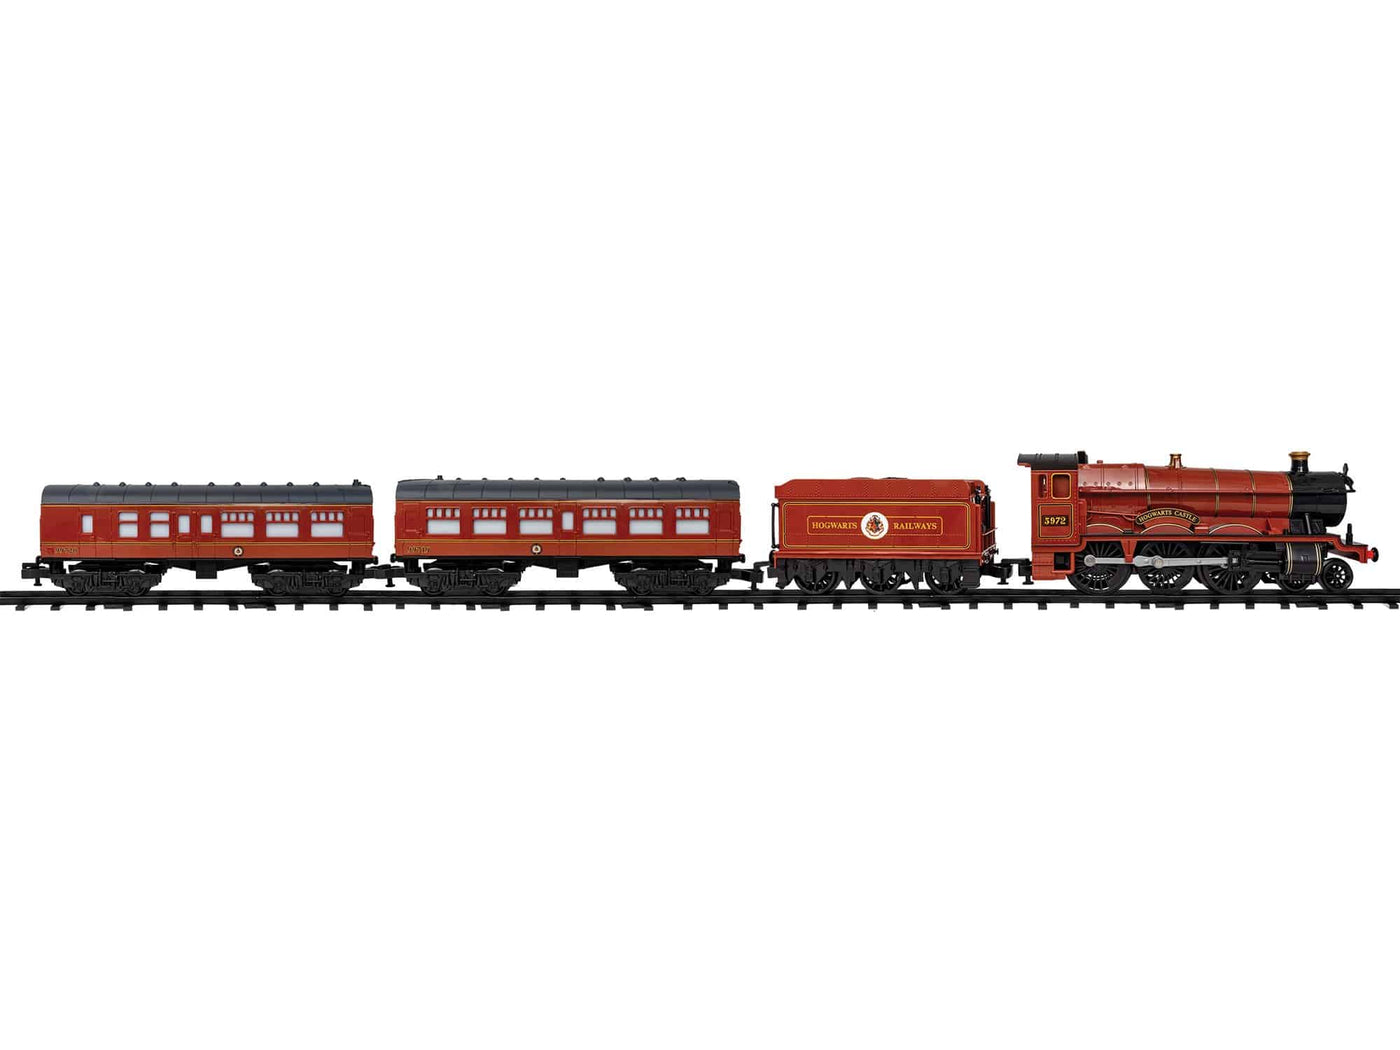 Lionel Harry Potter Hogwarts Express Ready To Play Train Set Battery 7-11960 New